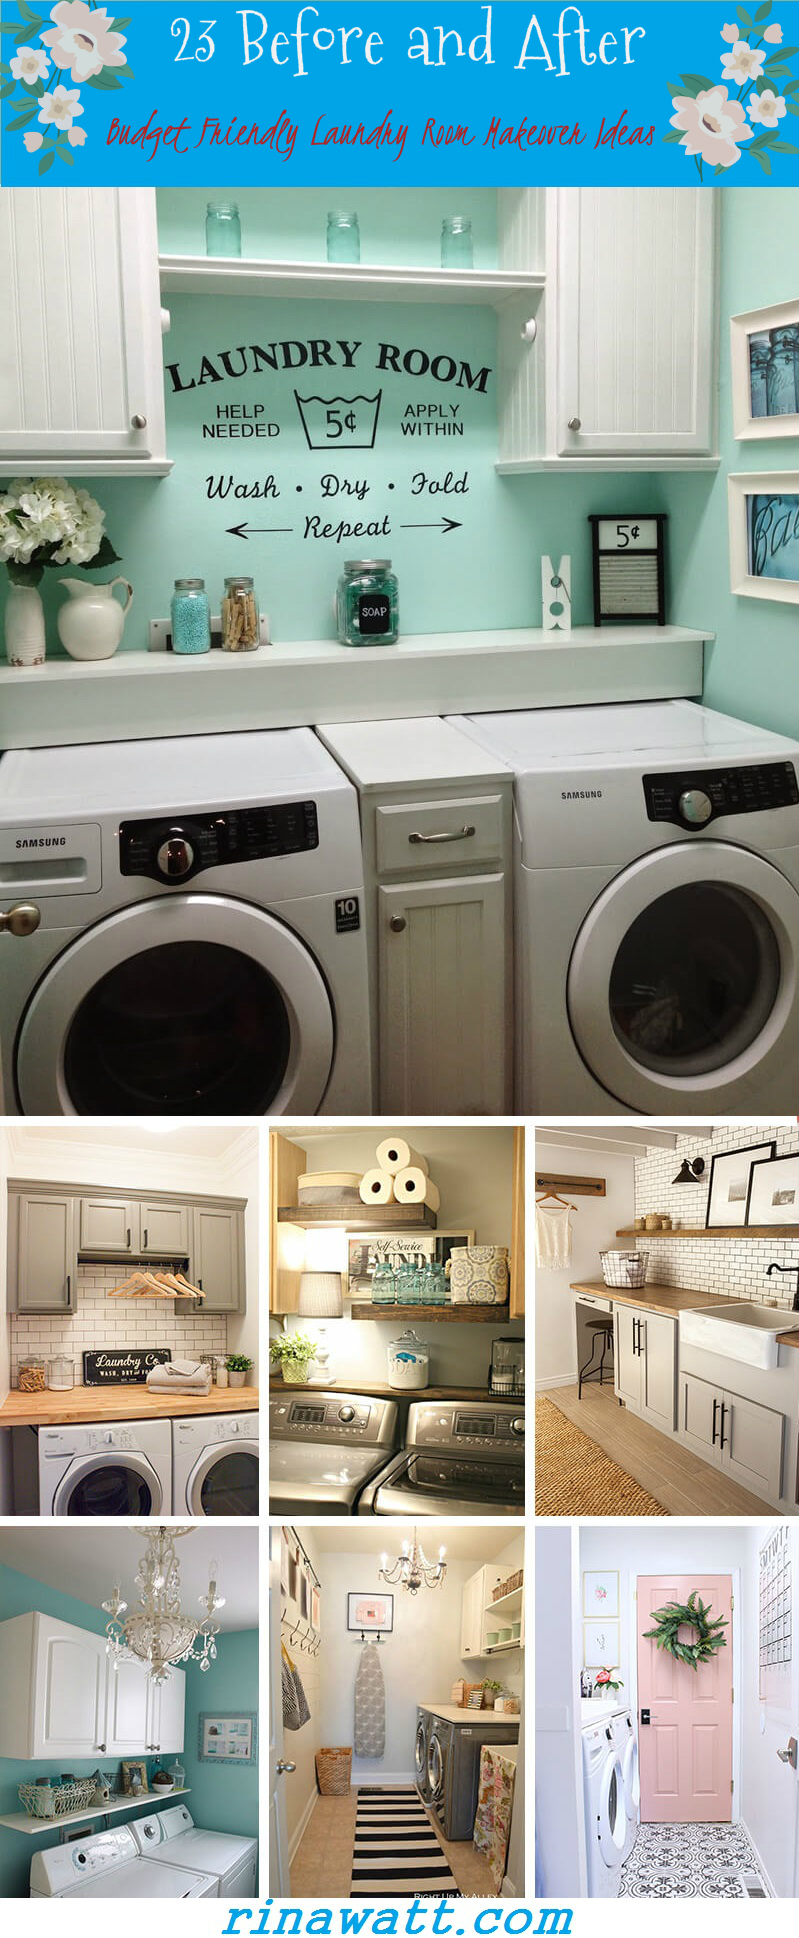 23 Before And After Budget Friendly Laundry Room Makeover Ideas That Will Amaze You Rina Watt Blogger Home Decor Diy And Recipes